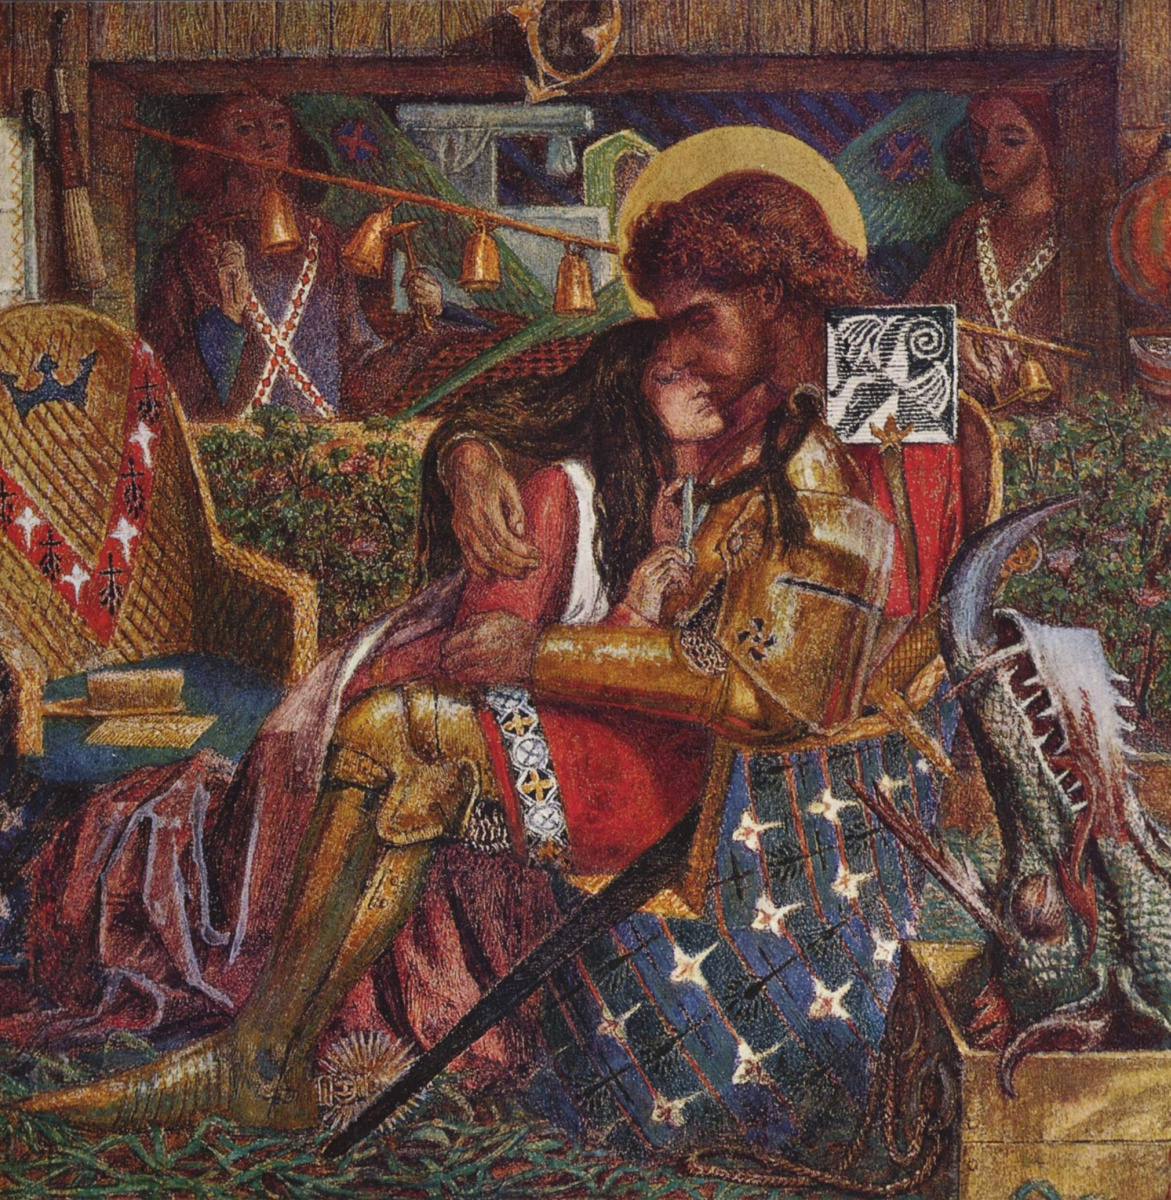 Dante Gabriel Rossetti. The wedding of Saint George and Princess Sabra